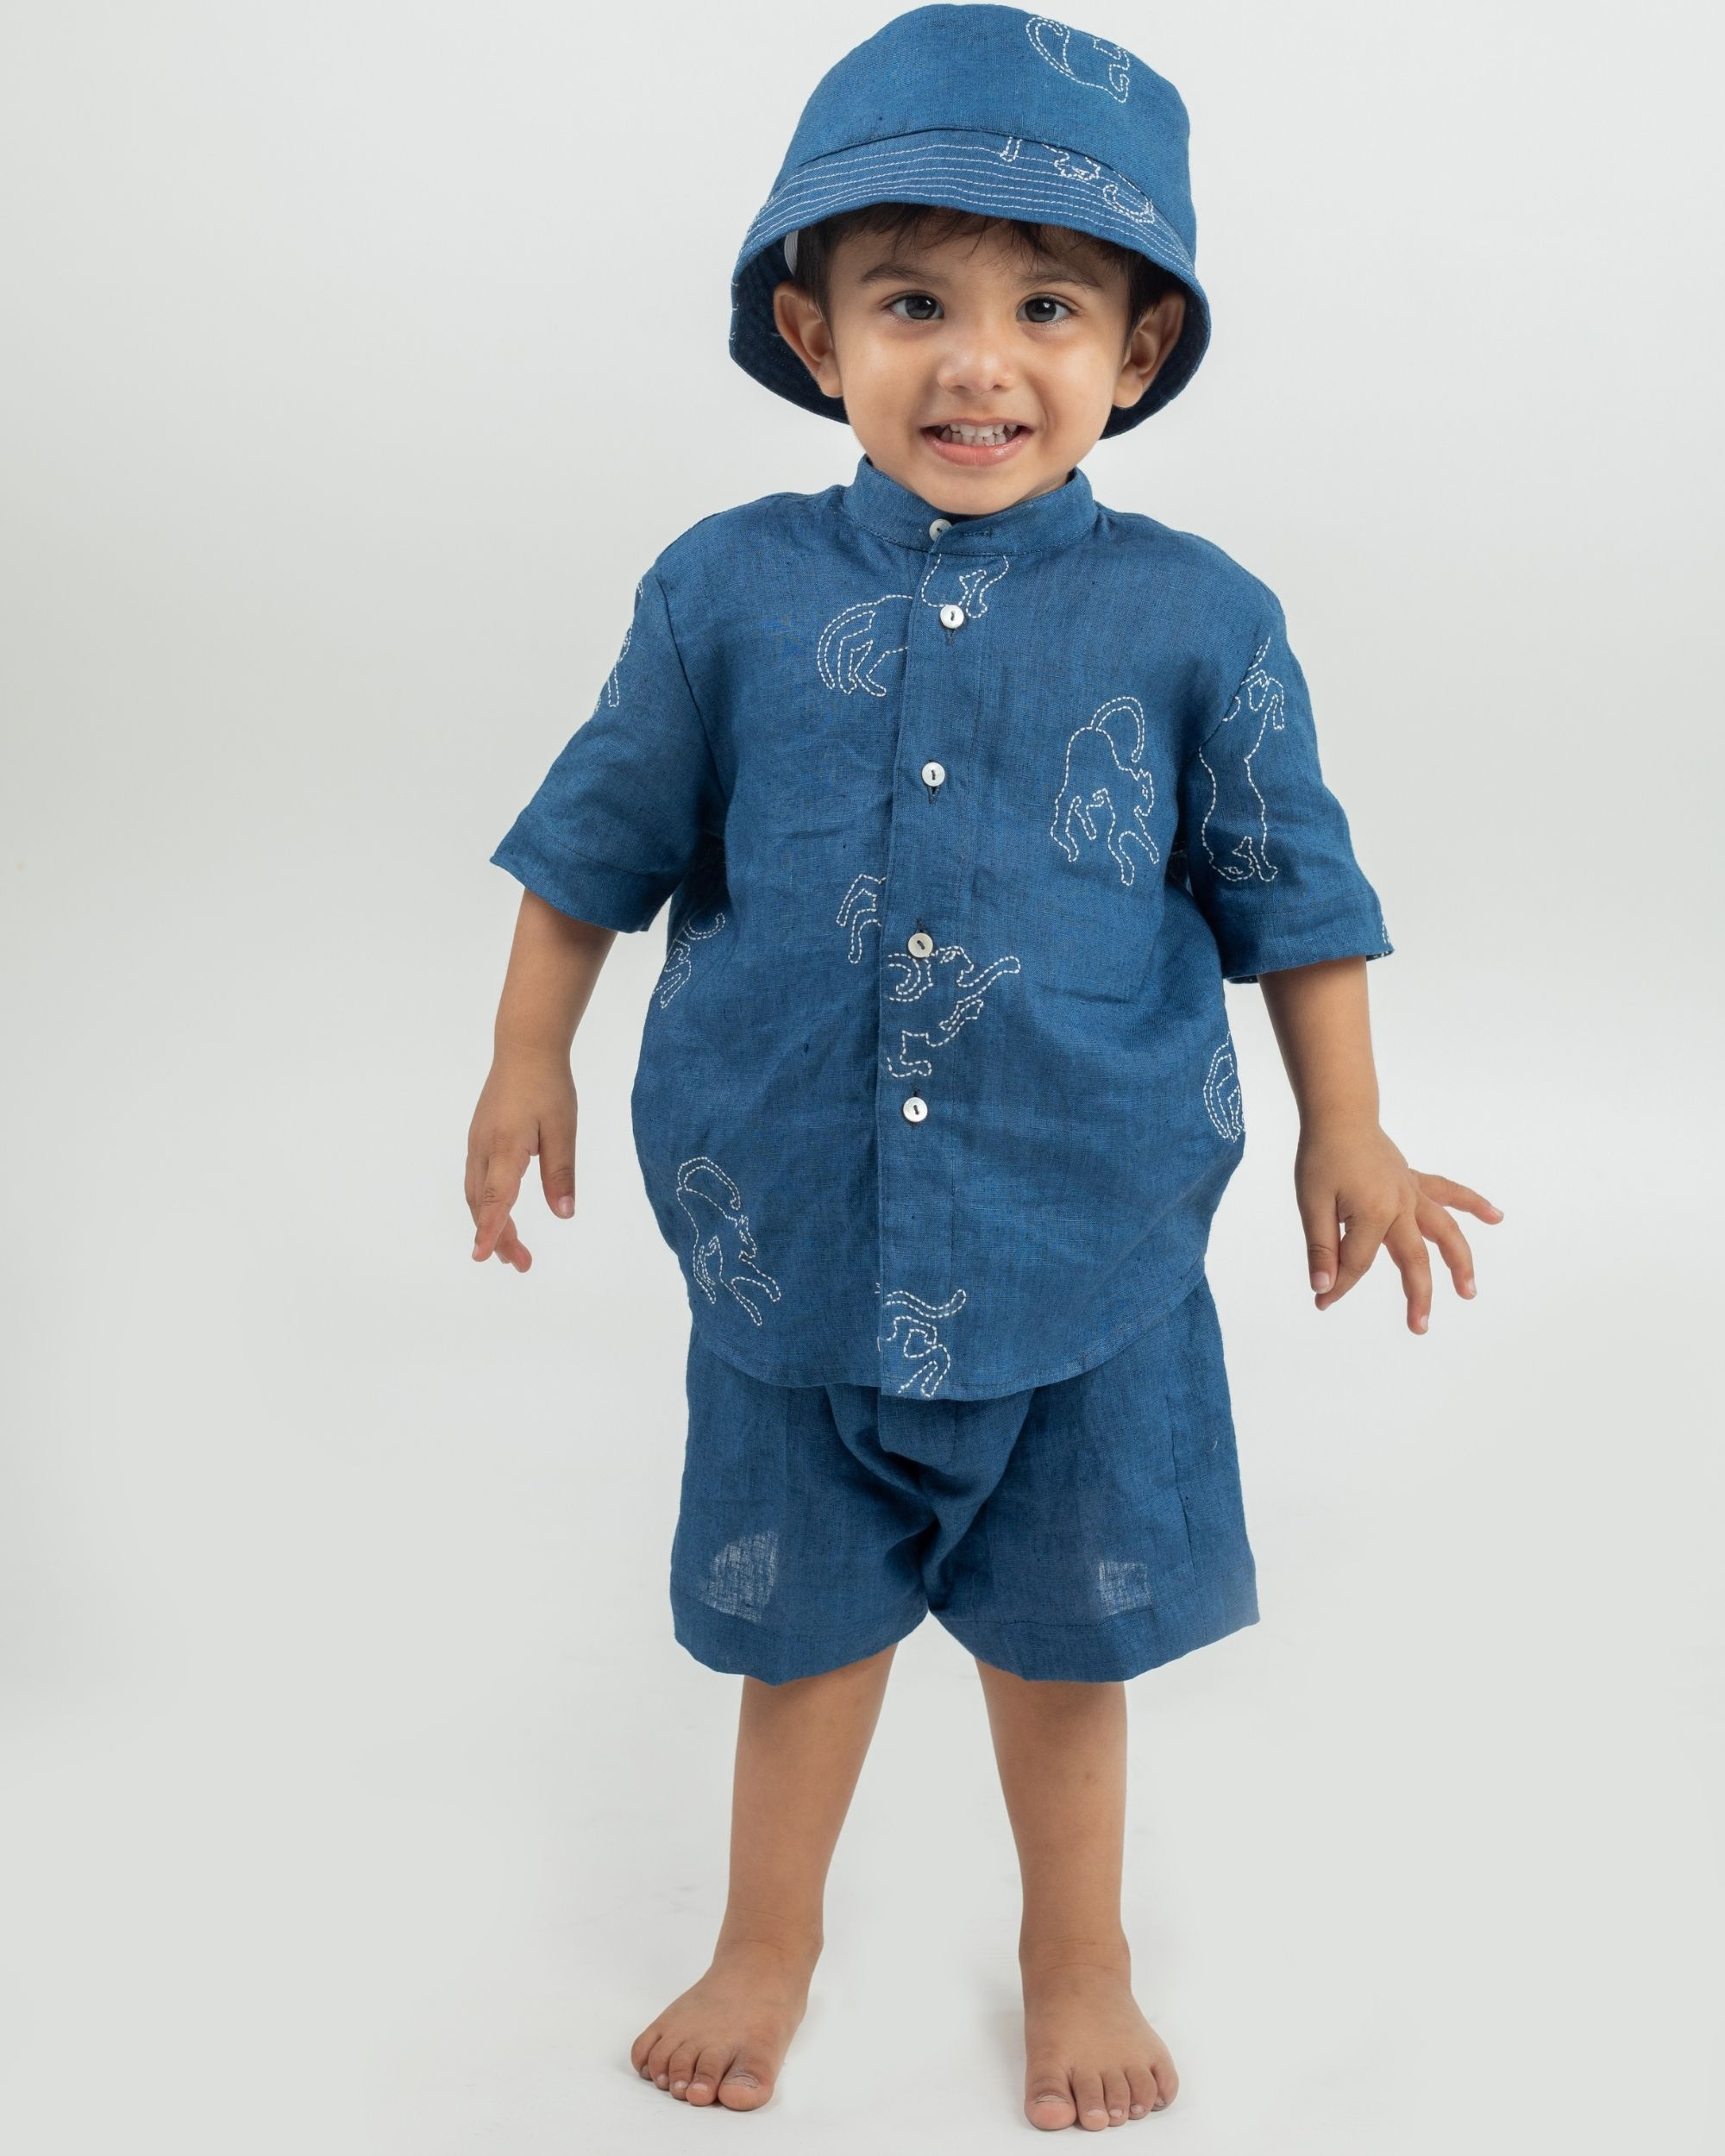 Blue animal hand embroidered shirt and shorts with bucket hat - set of three